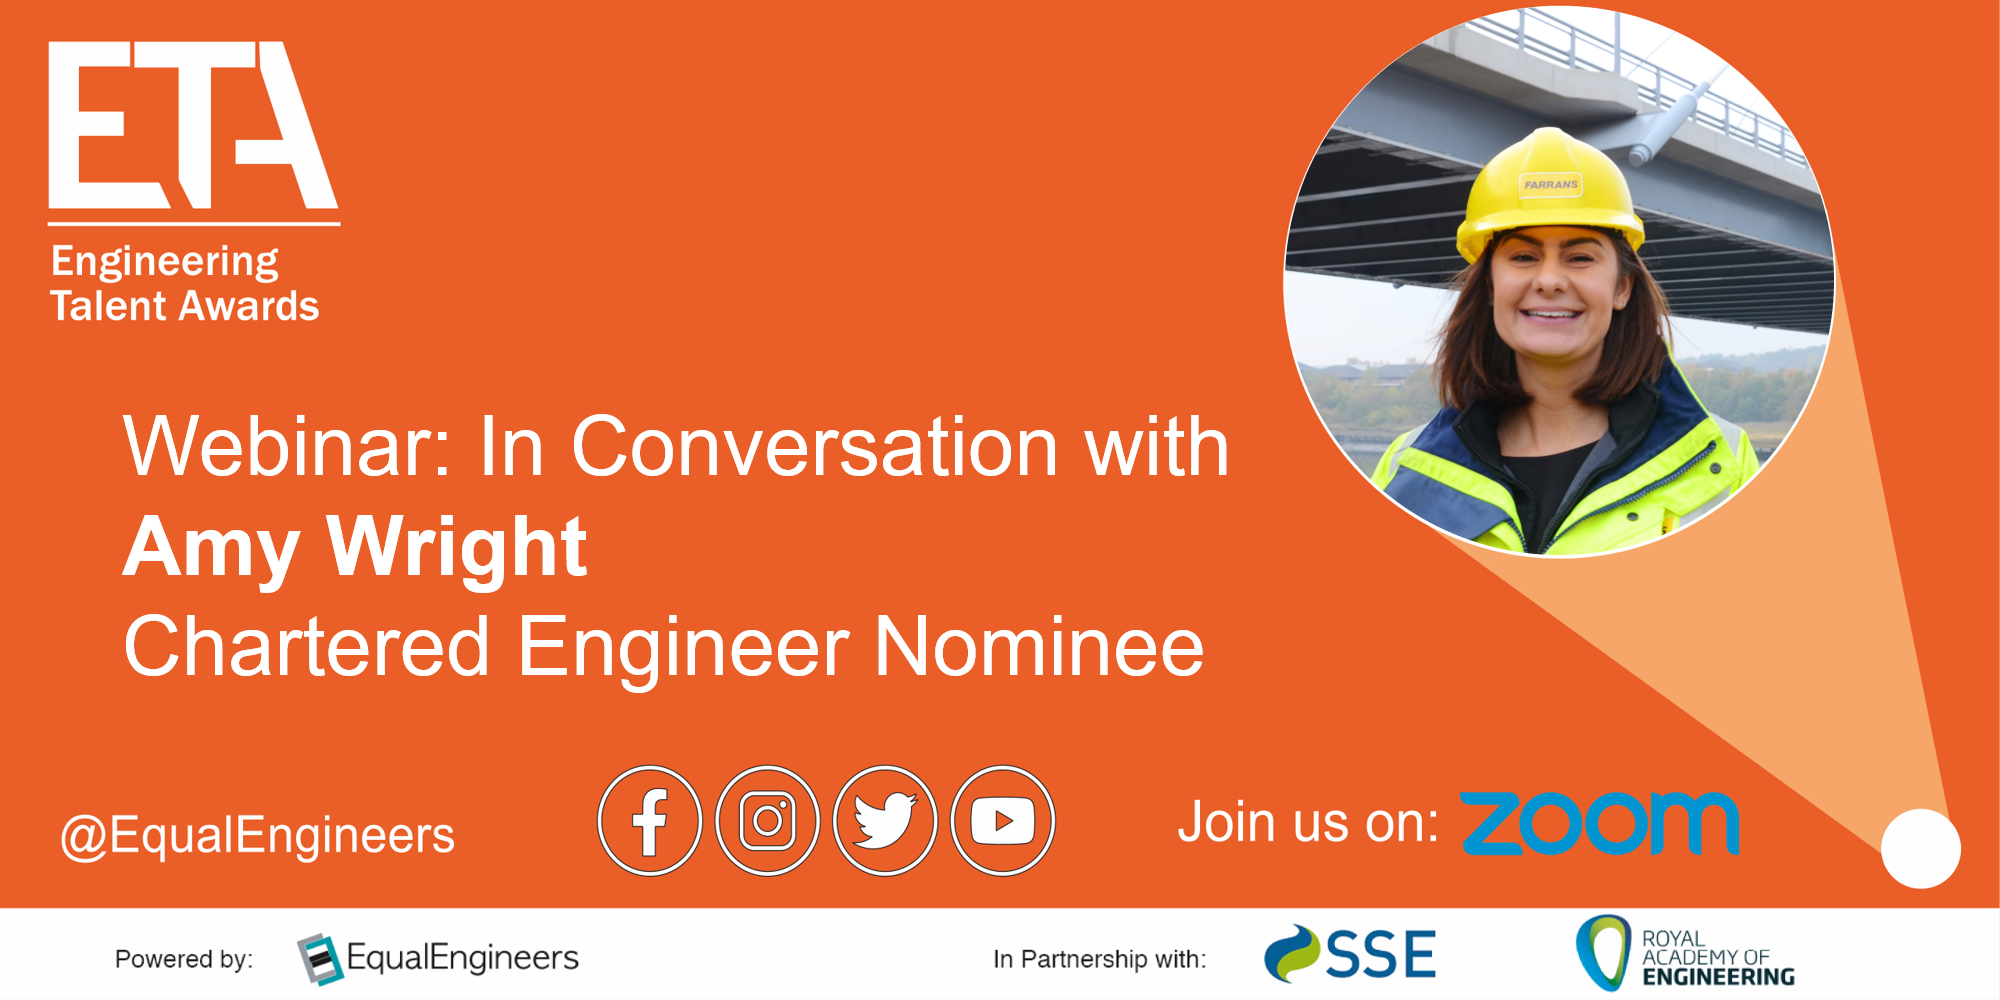 chartered-engineer-nominee-amy-wright